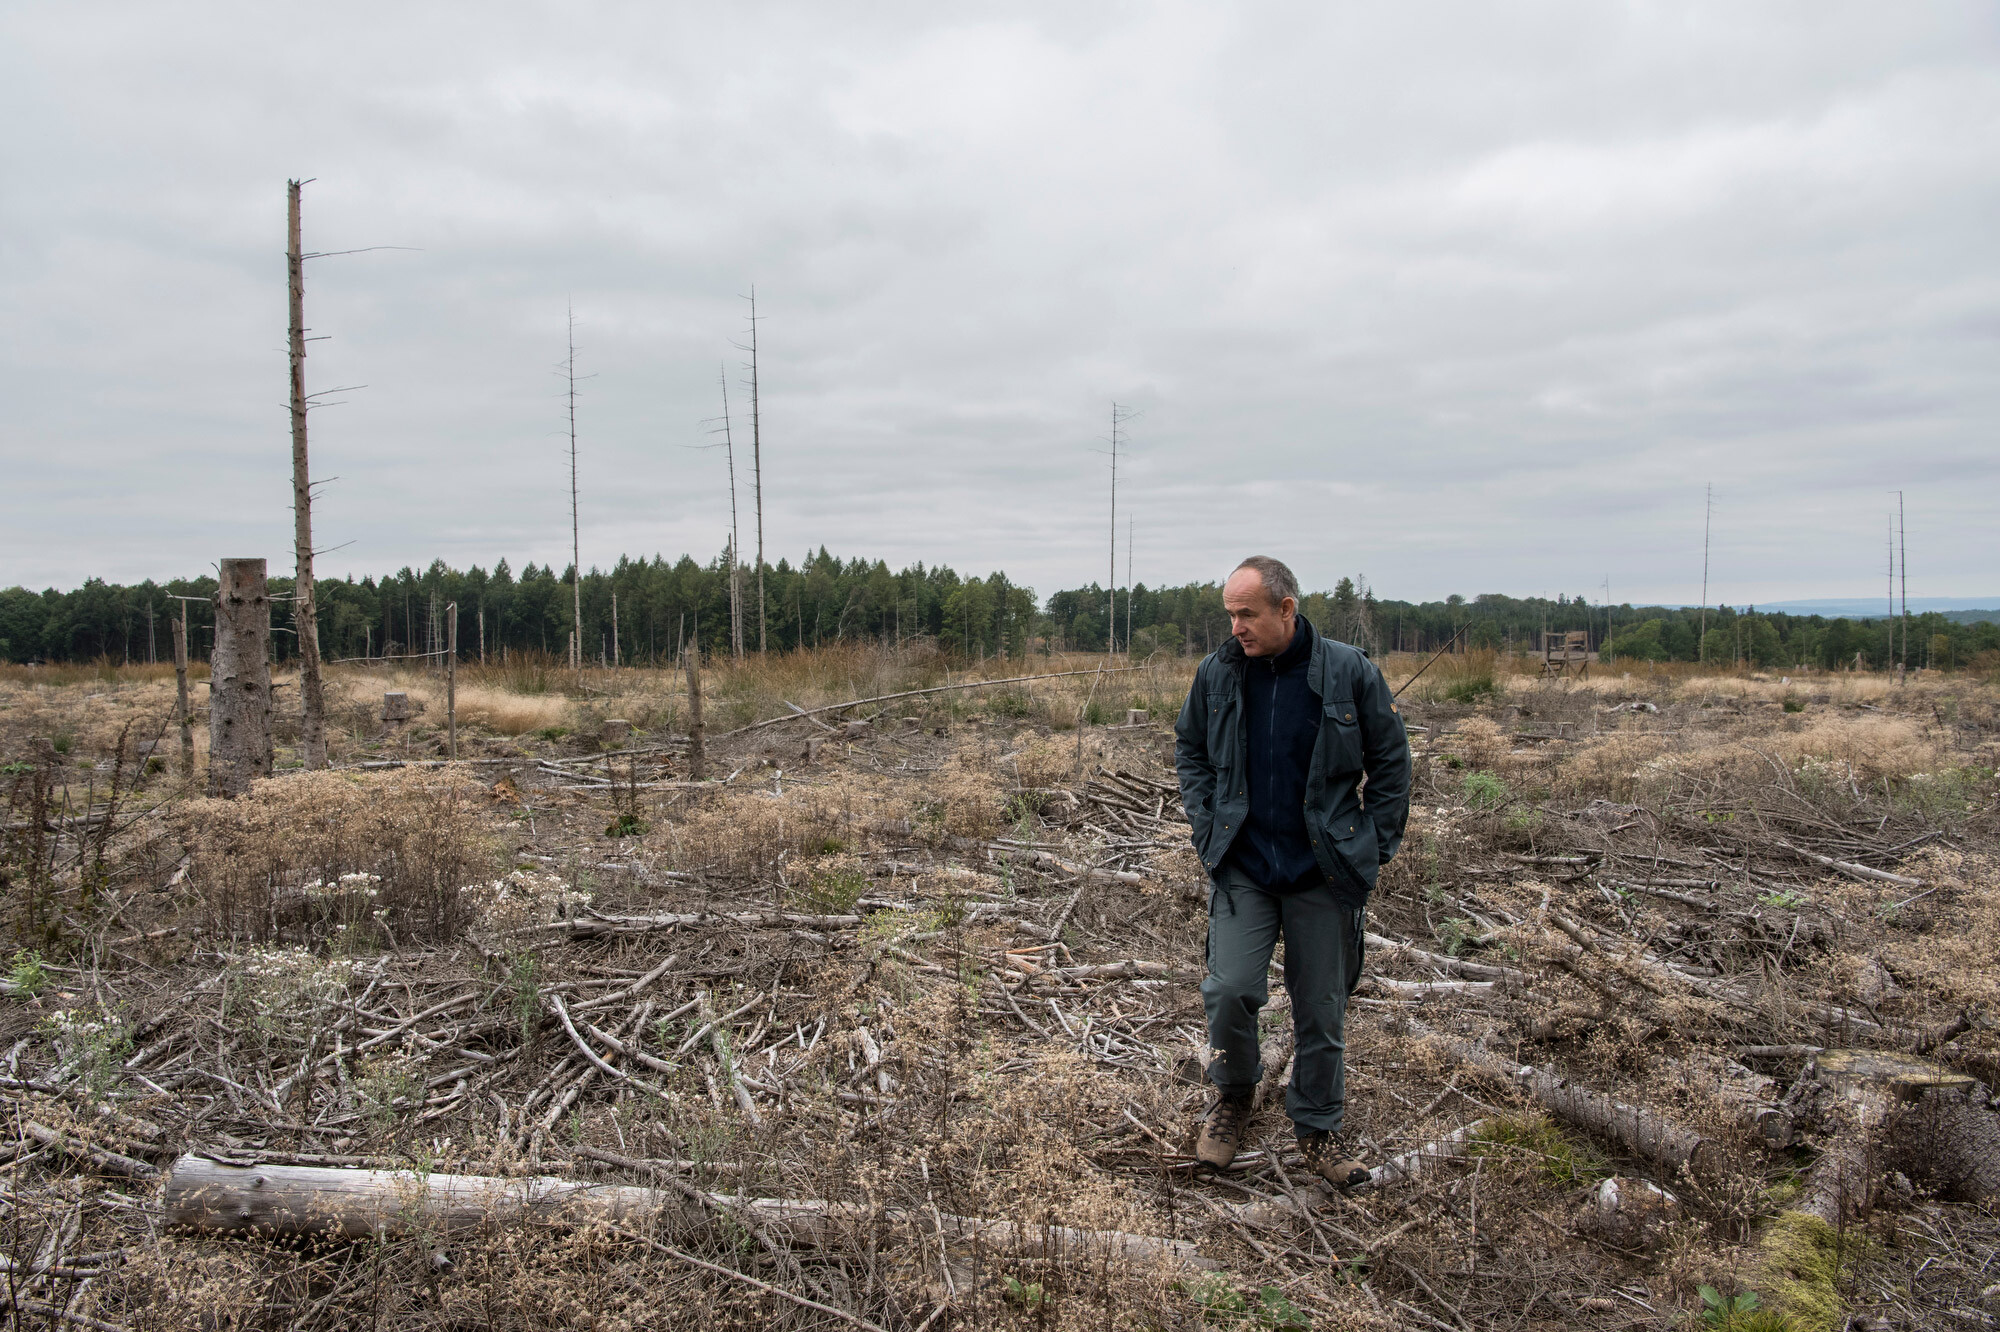 <i>Helena Schätzle/Laif/Redux for CNN</i><br/>Peter Meyer shows an area where trees were completely destroyed by the bark beetle.